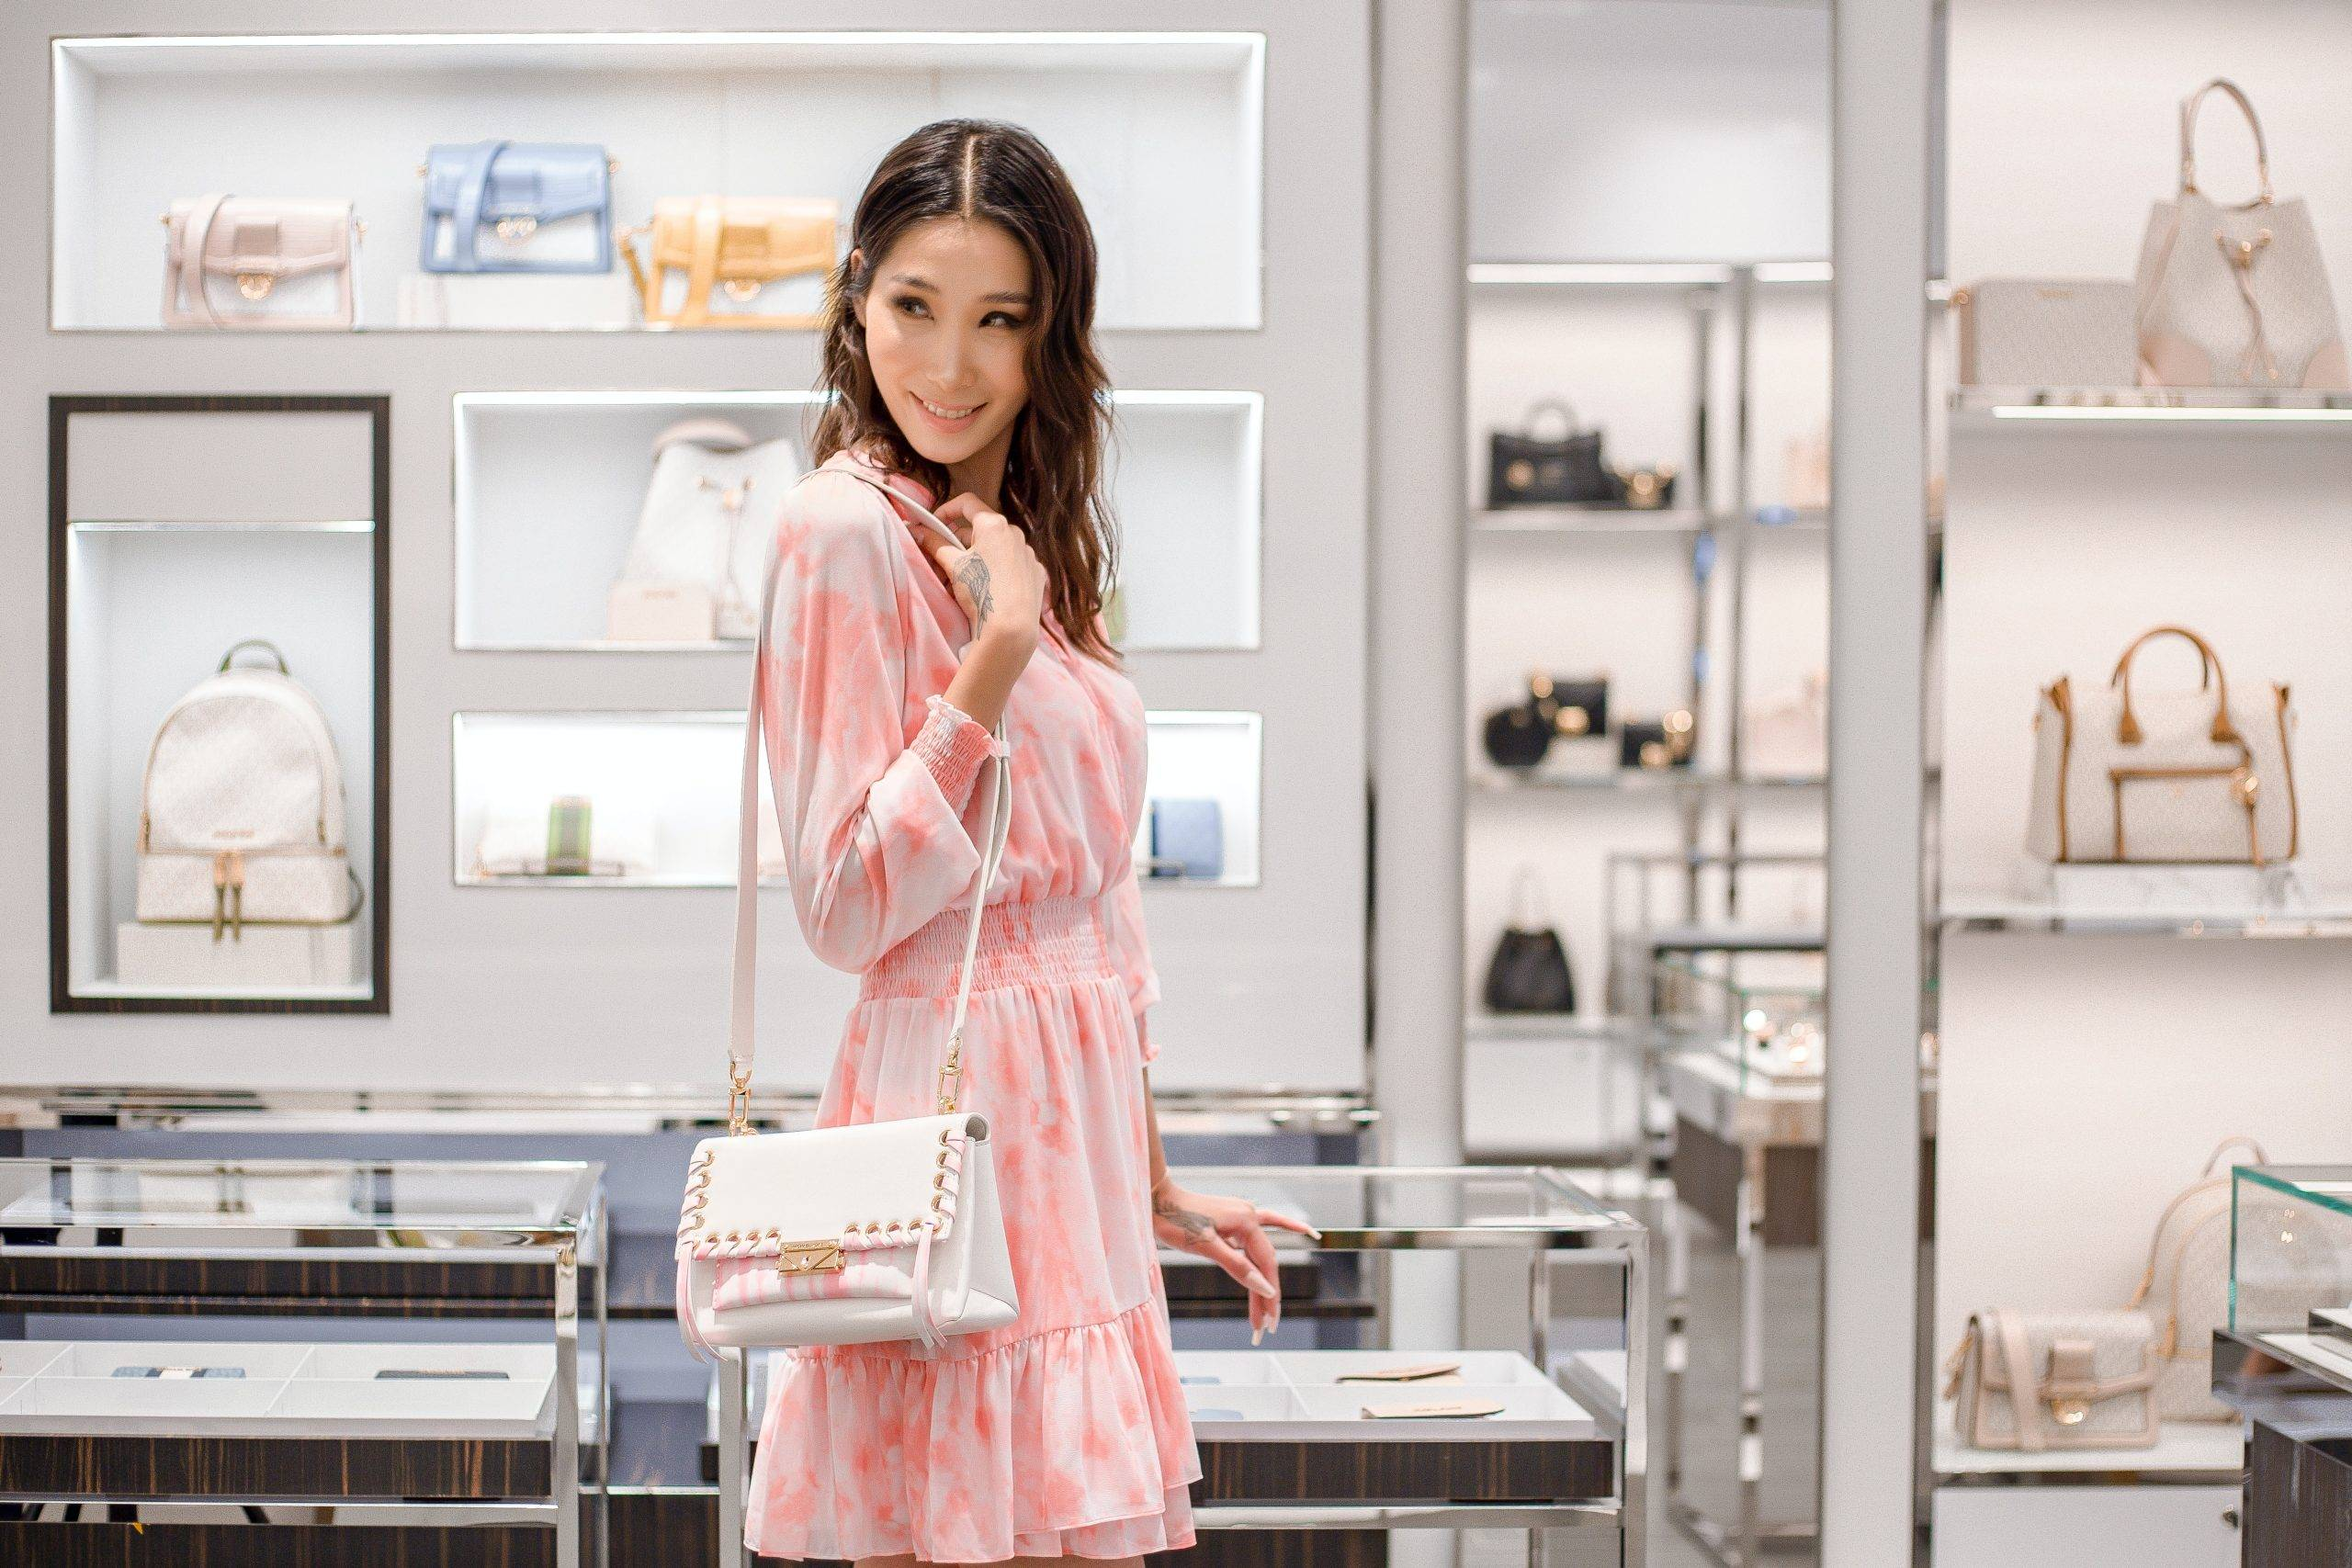 How Singapore Fashion Retailers Can Get Accurate Insights on Consumer Demand